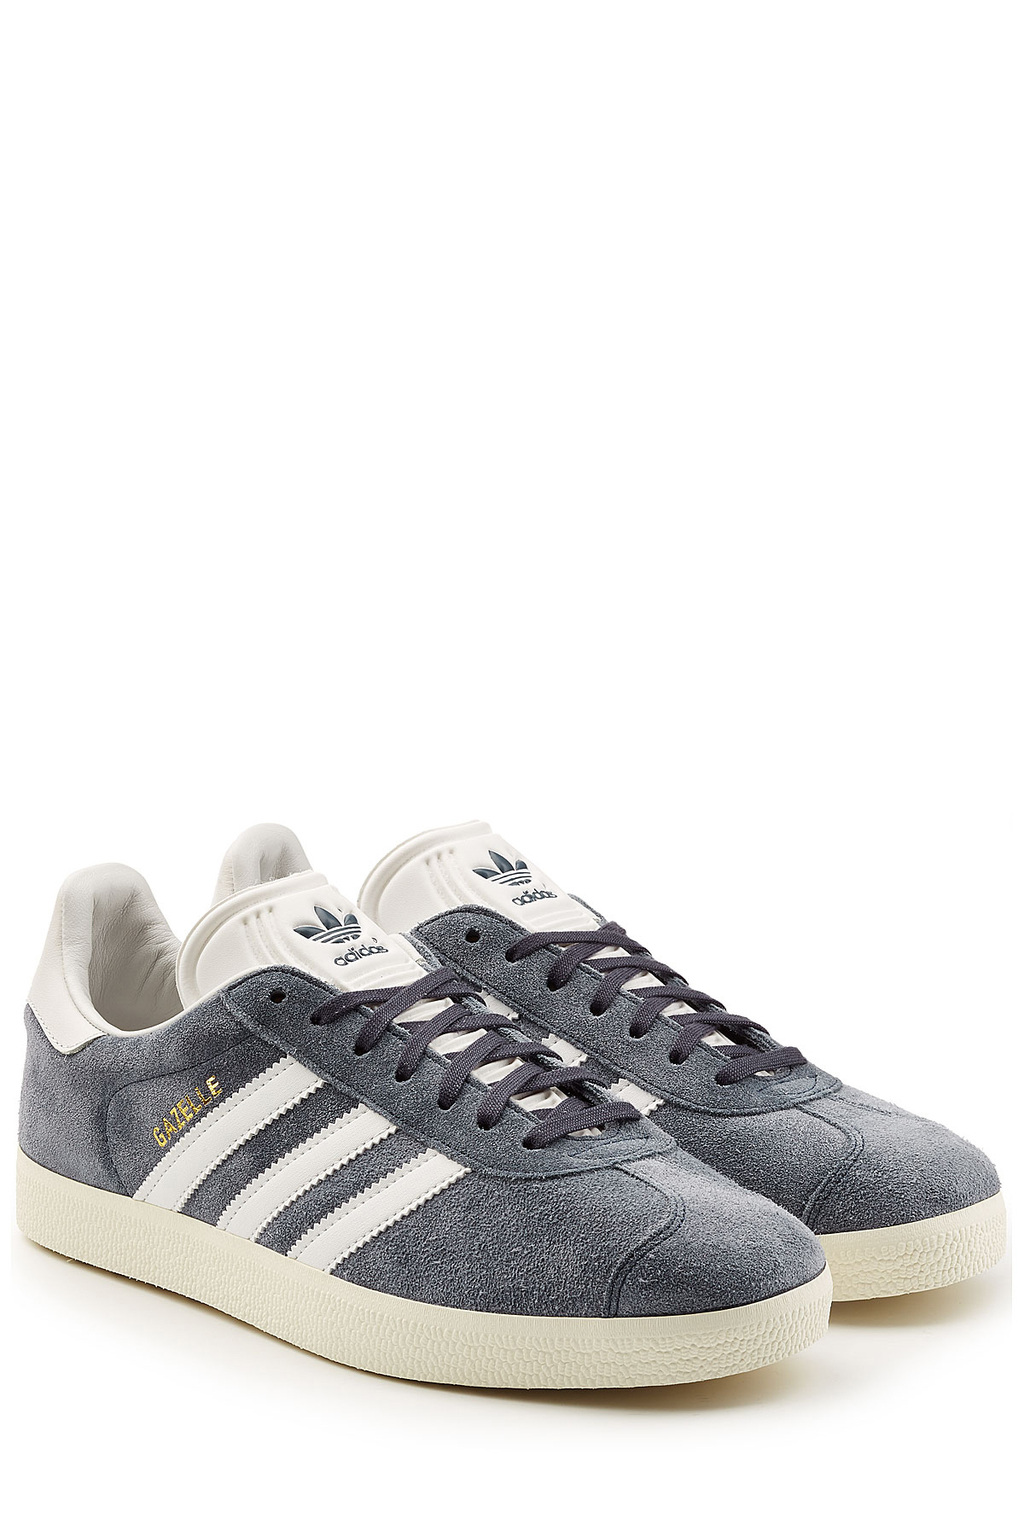 Suede Gazelle Sneakers Blue - secondary colour: ivory/cream; predominant colour: mid grey; occasions: casual, creative work; material: suede; heel height: flat; toe: round toe; style: trainers; finish: plain; pattern: plain; shoe detail: moulded soul; season: s/s 2016